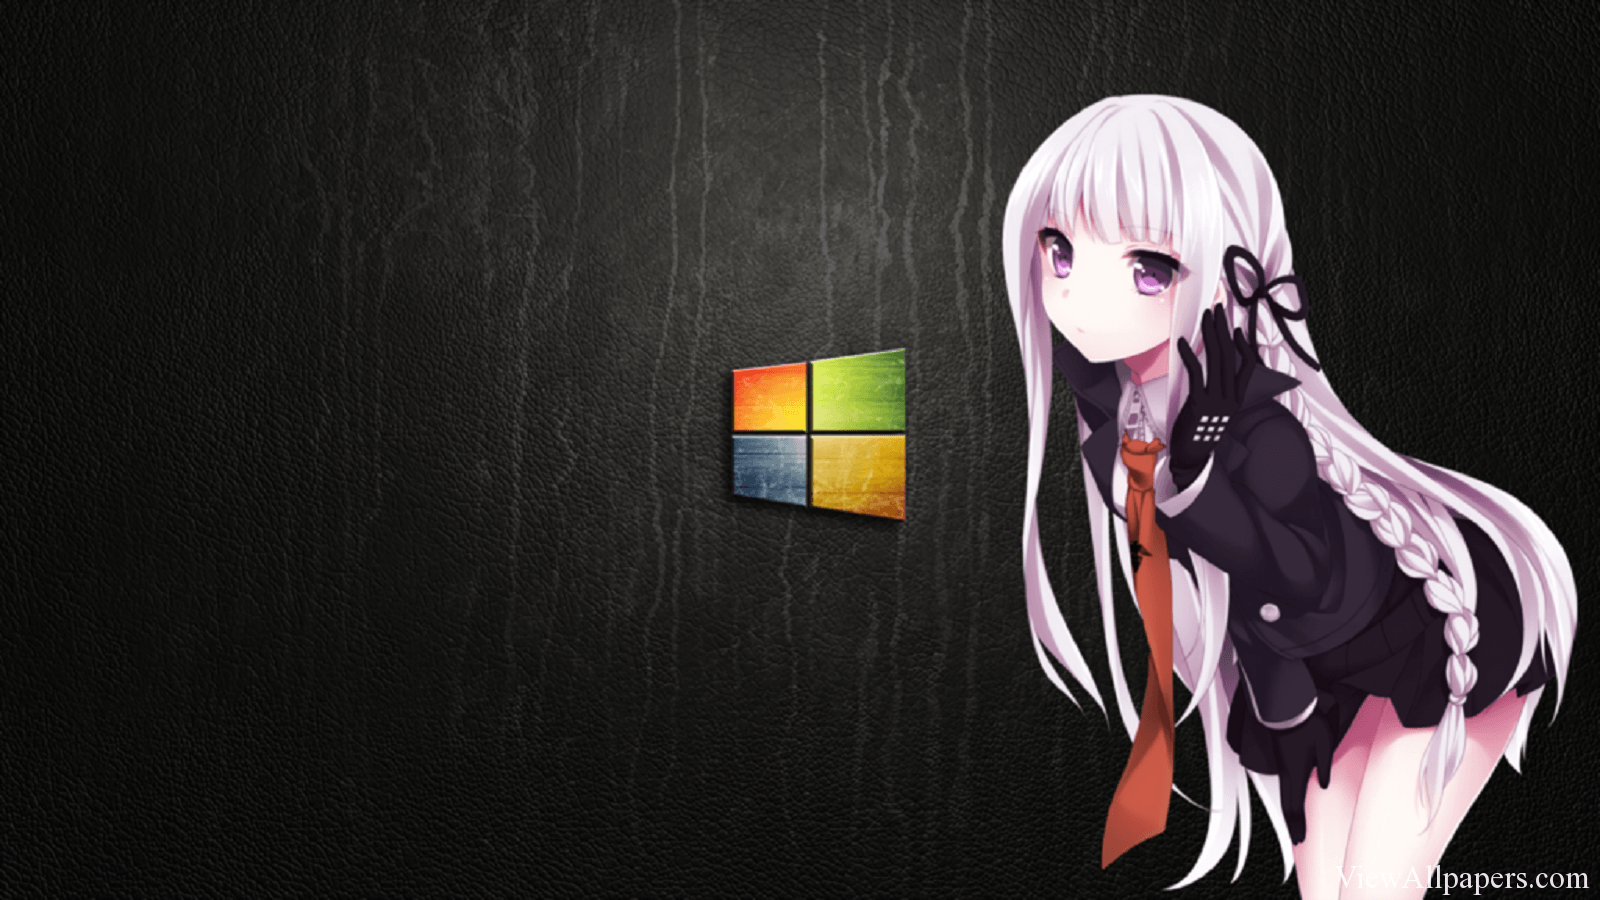 Download 410 Koleksi Background Anime Laptop HD Gratis